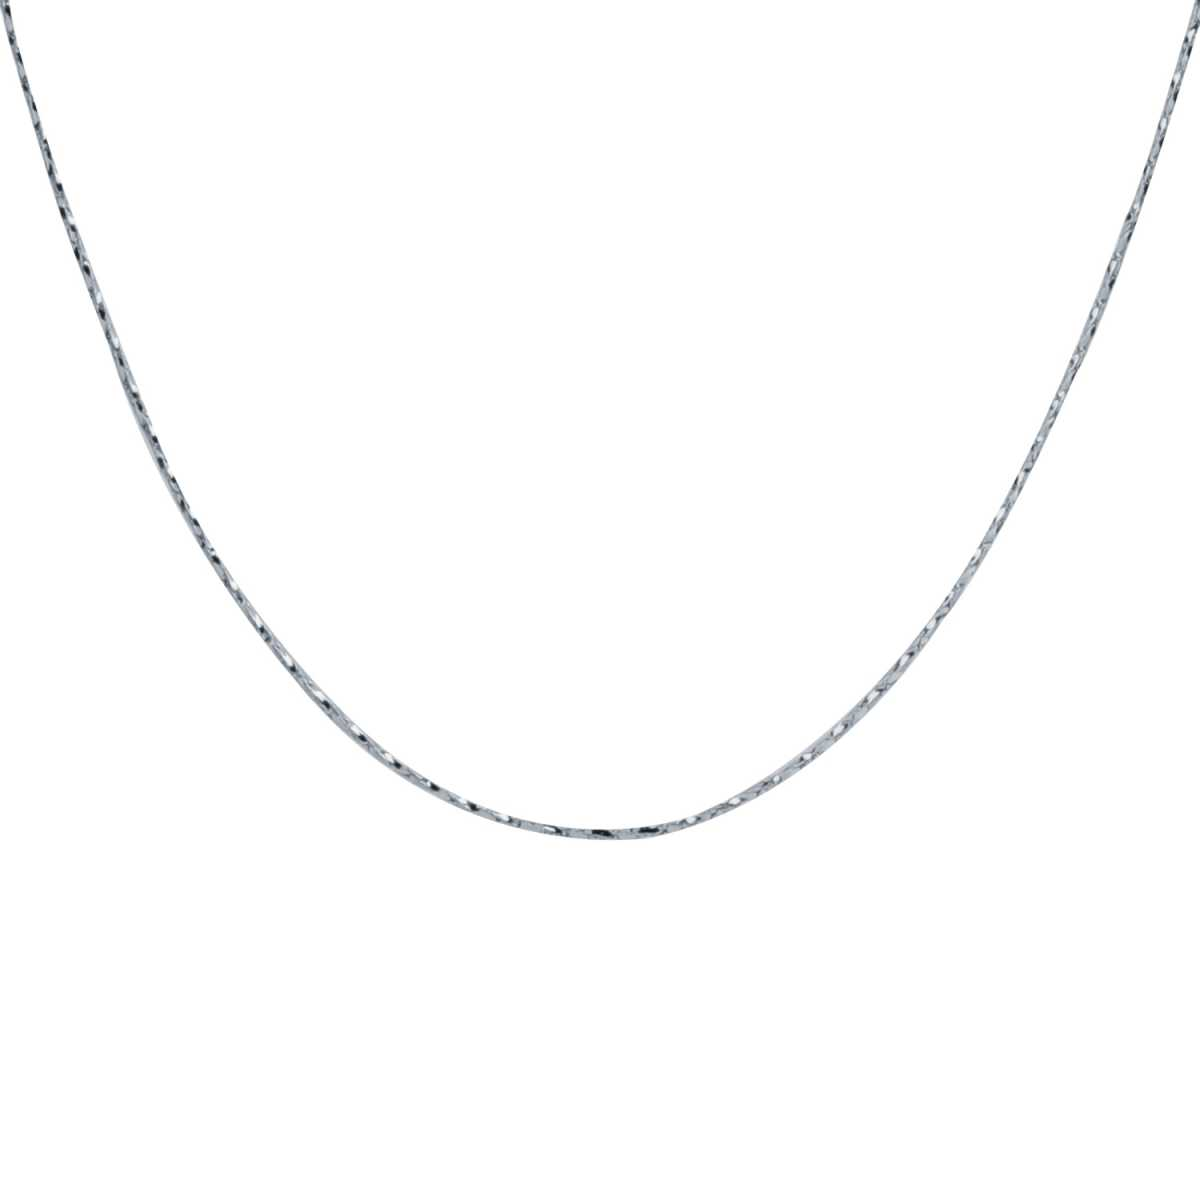 Silver Shine Artistic Silver Plated Simple Design Chain Of 17 Inch Daily Wear Jewellry For Girls/Boys/Men/Women